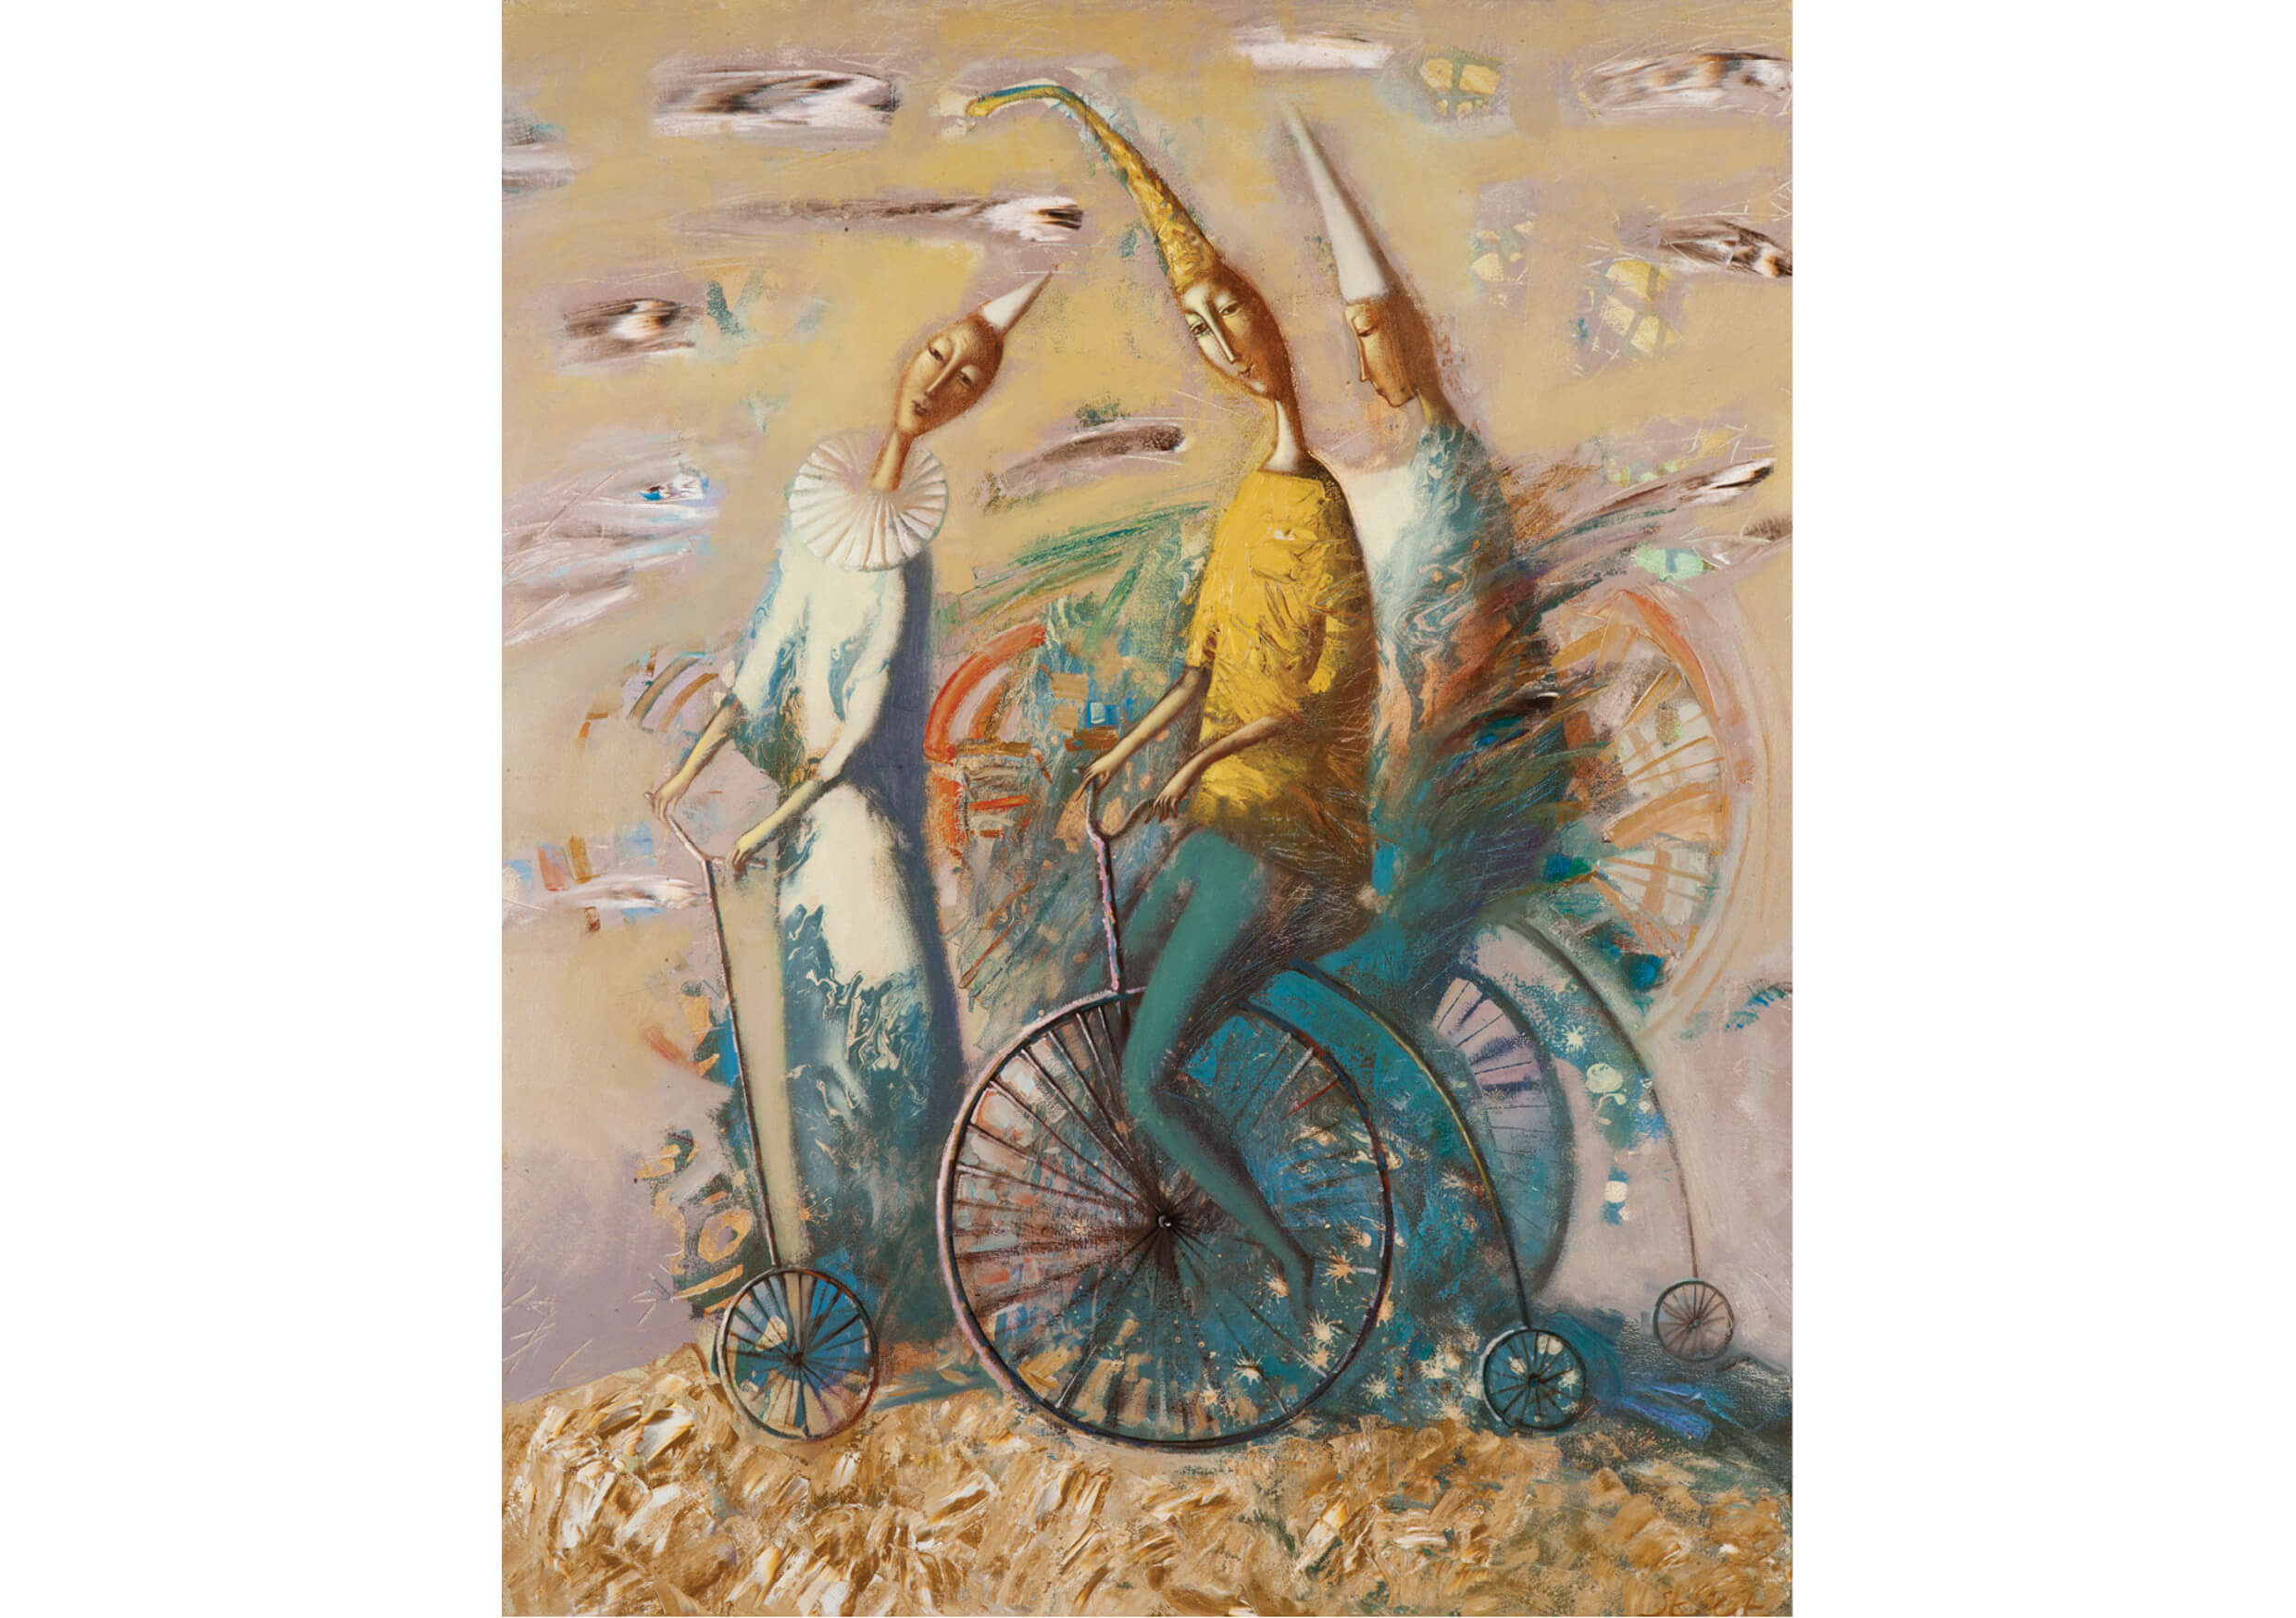 Bicycles, Mixed media on canvas, 100 x 80 cm